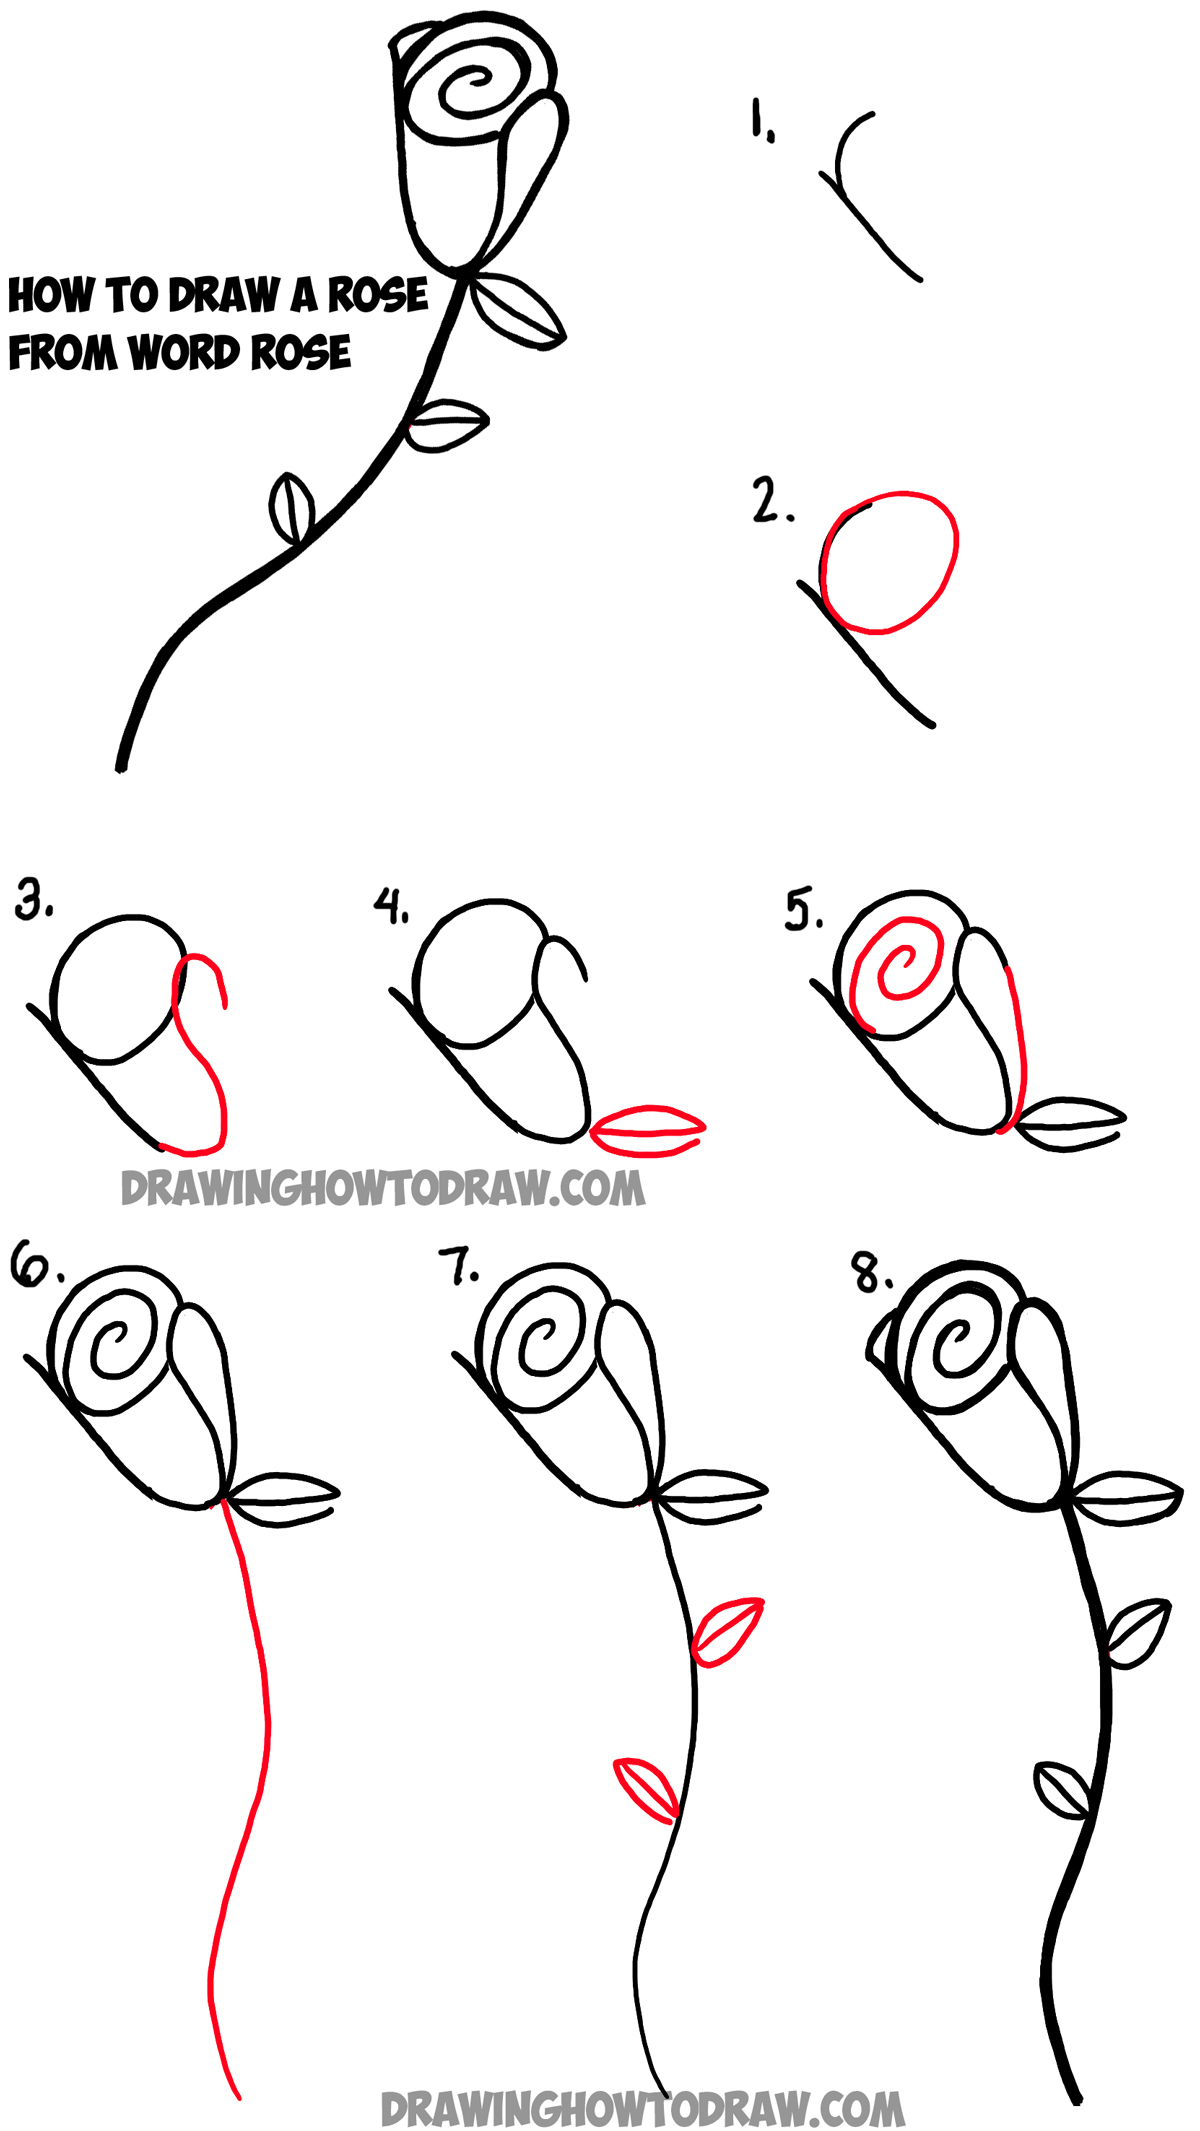 How To Draw A Rose From Word Rose Drawing Tutorial For Kids How To